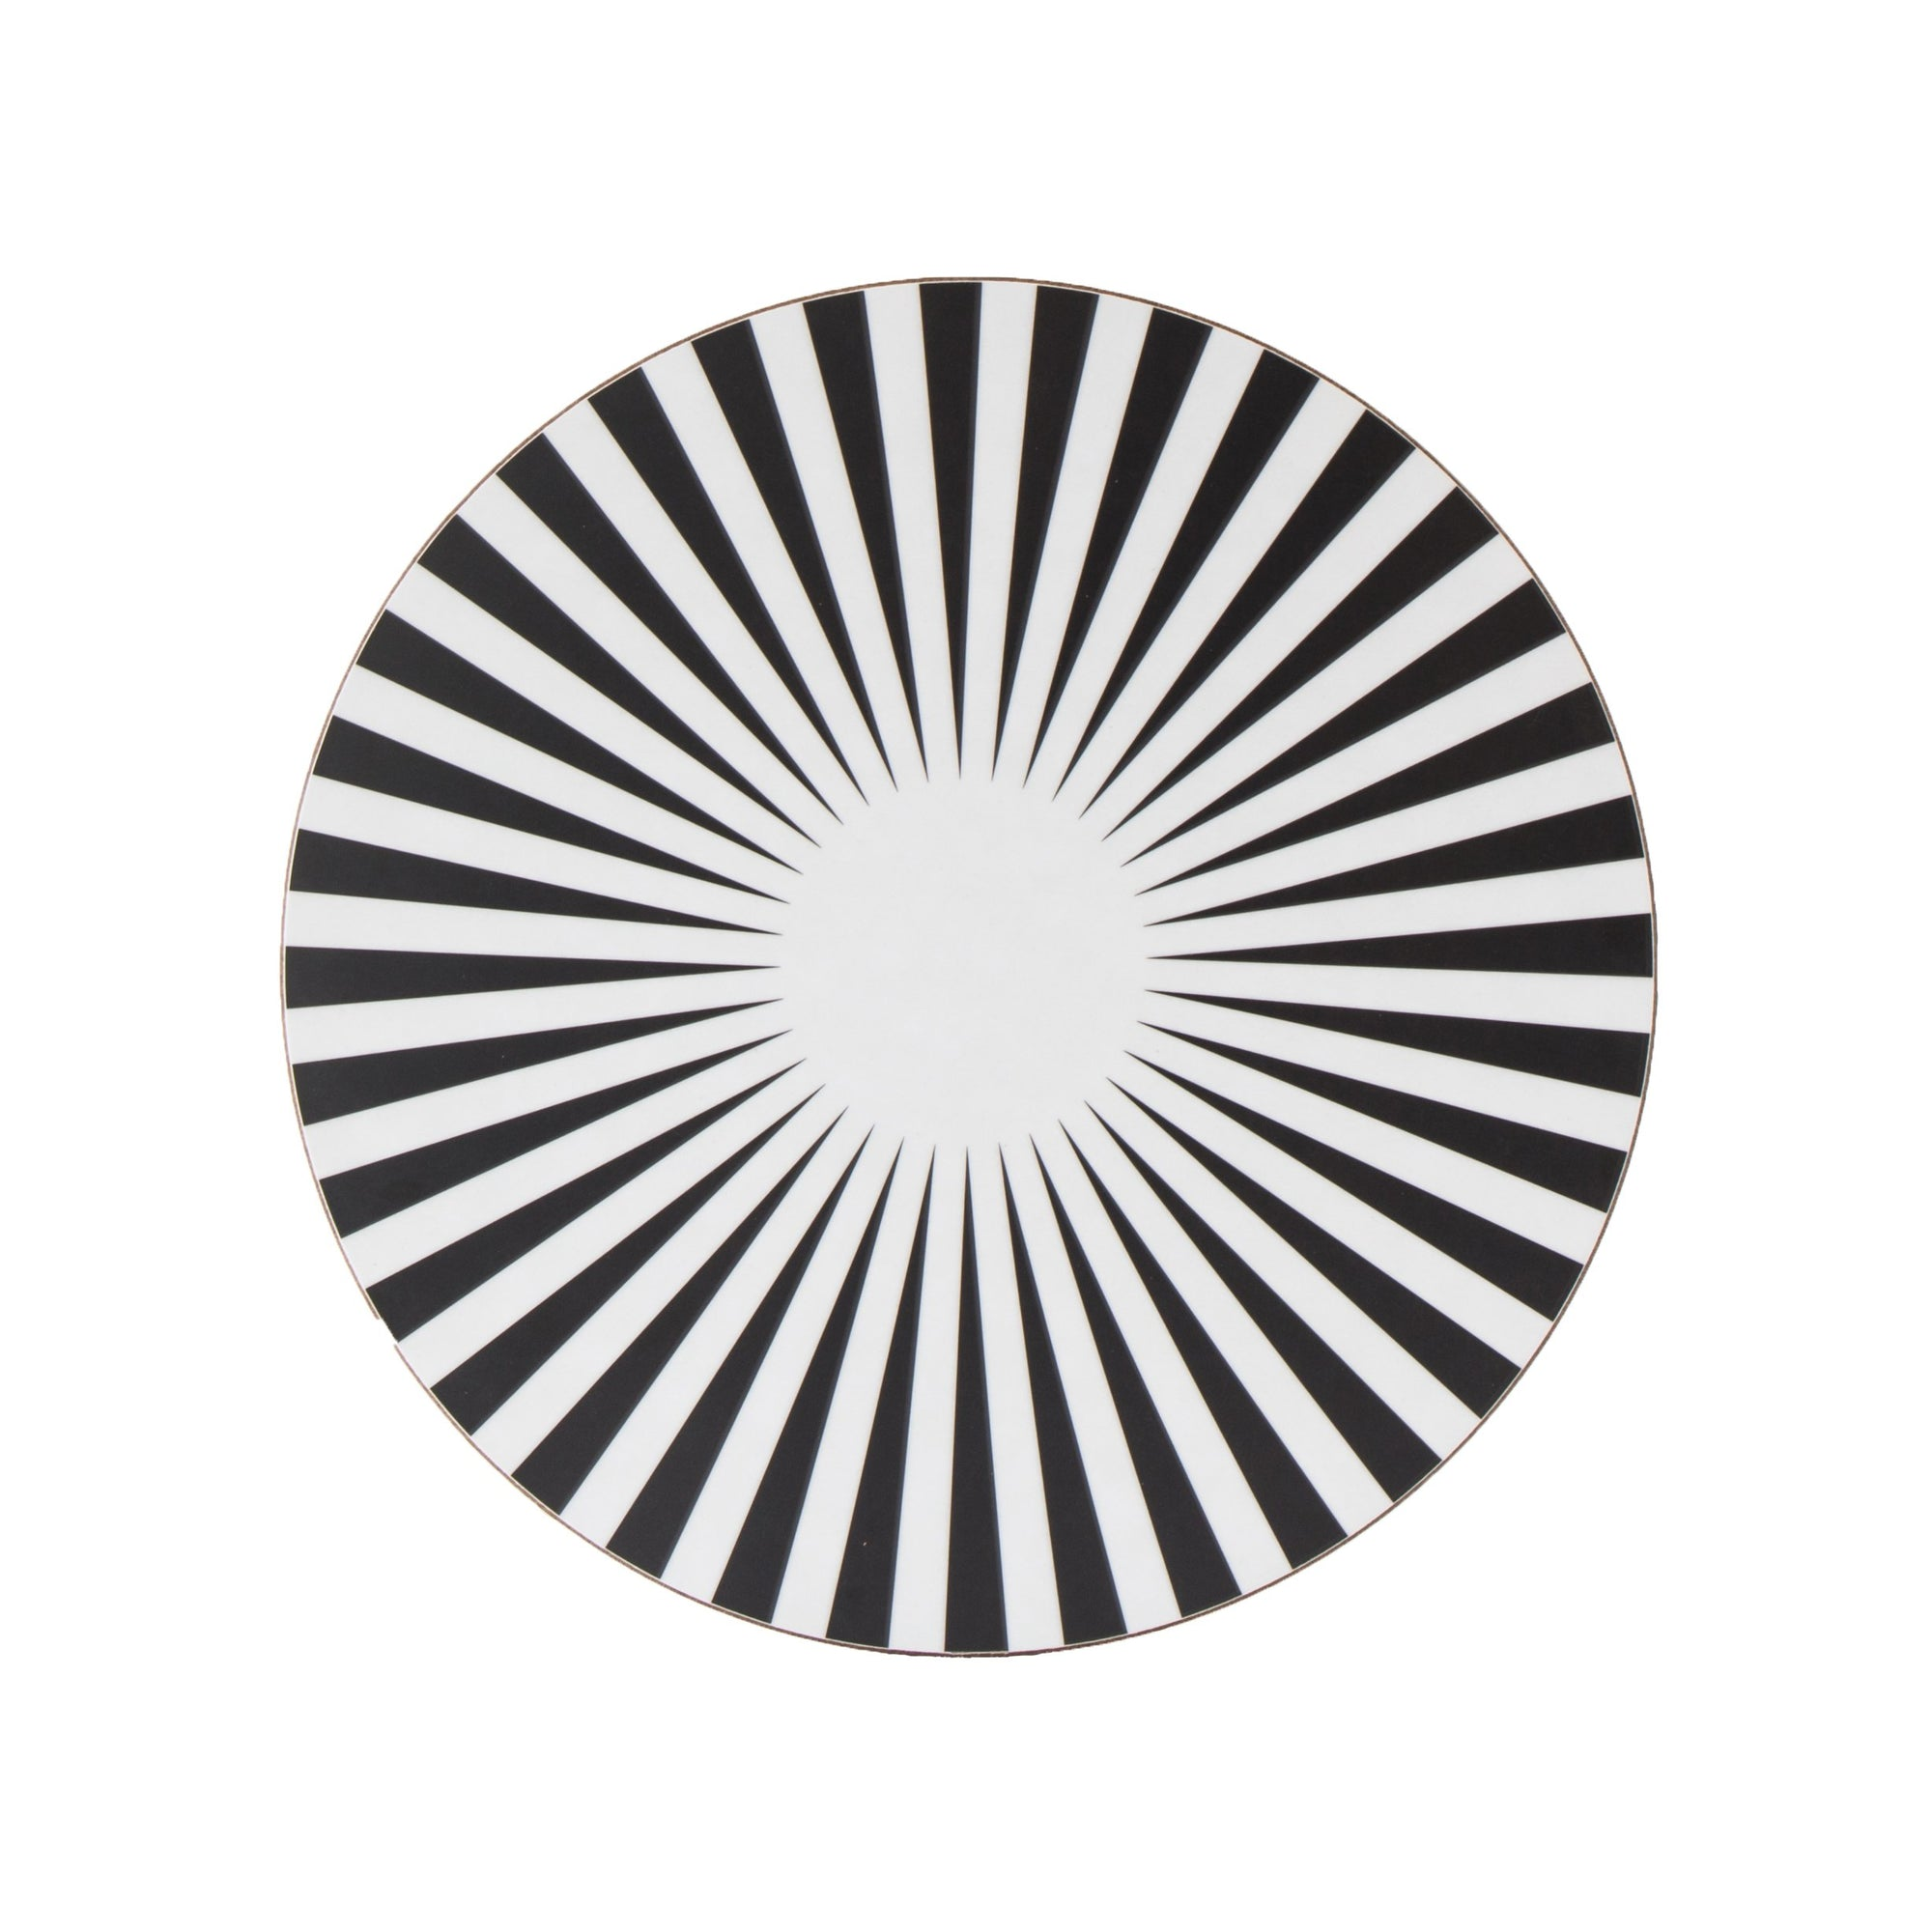 Pinwheel Round Coaster - MAiK sustainably sourced, ethically produced.